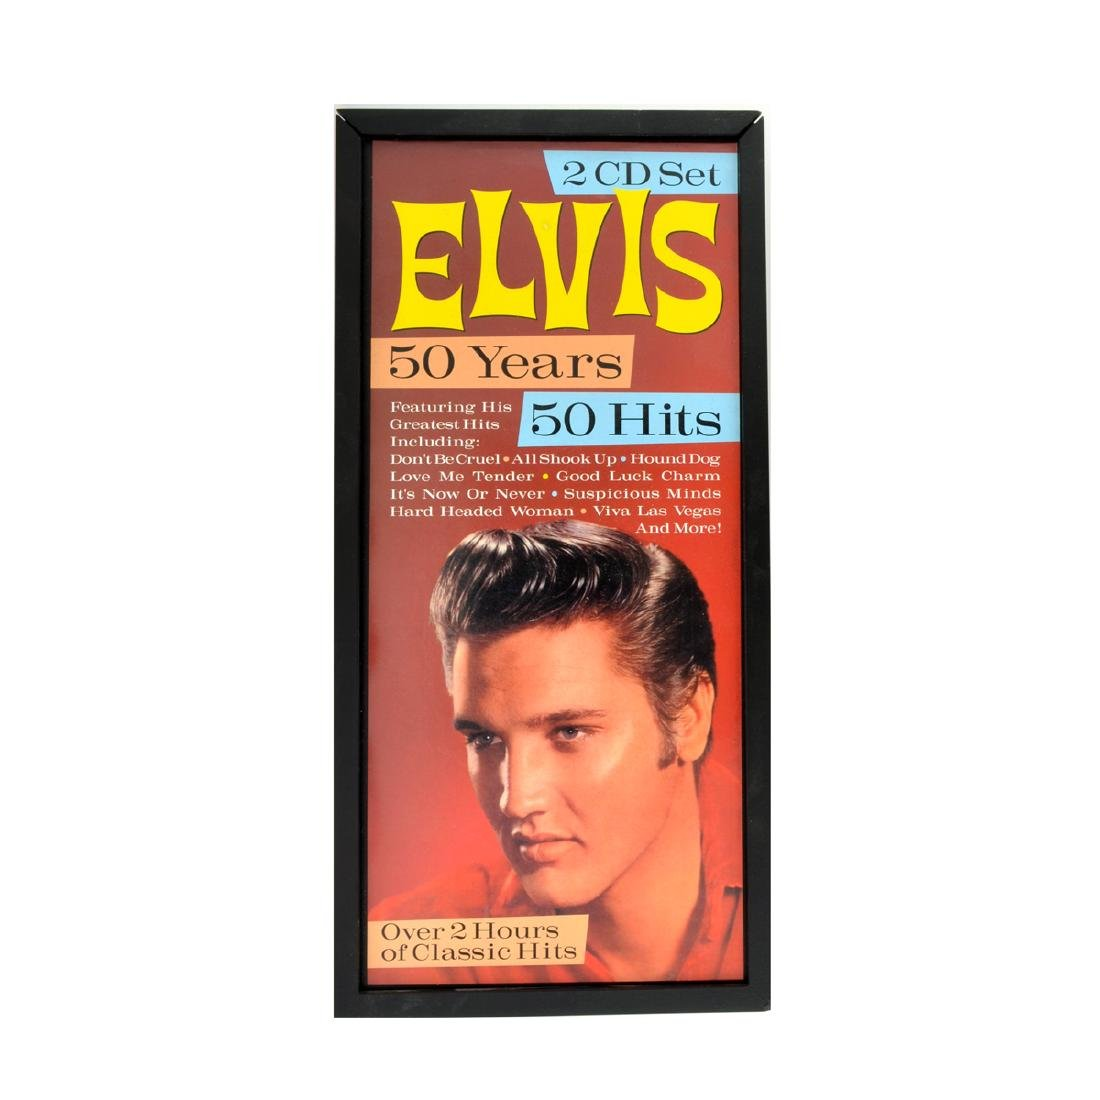 Elvis Presley CD's 50 Years 50 Hits Collector's Box Set